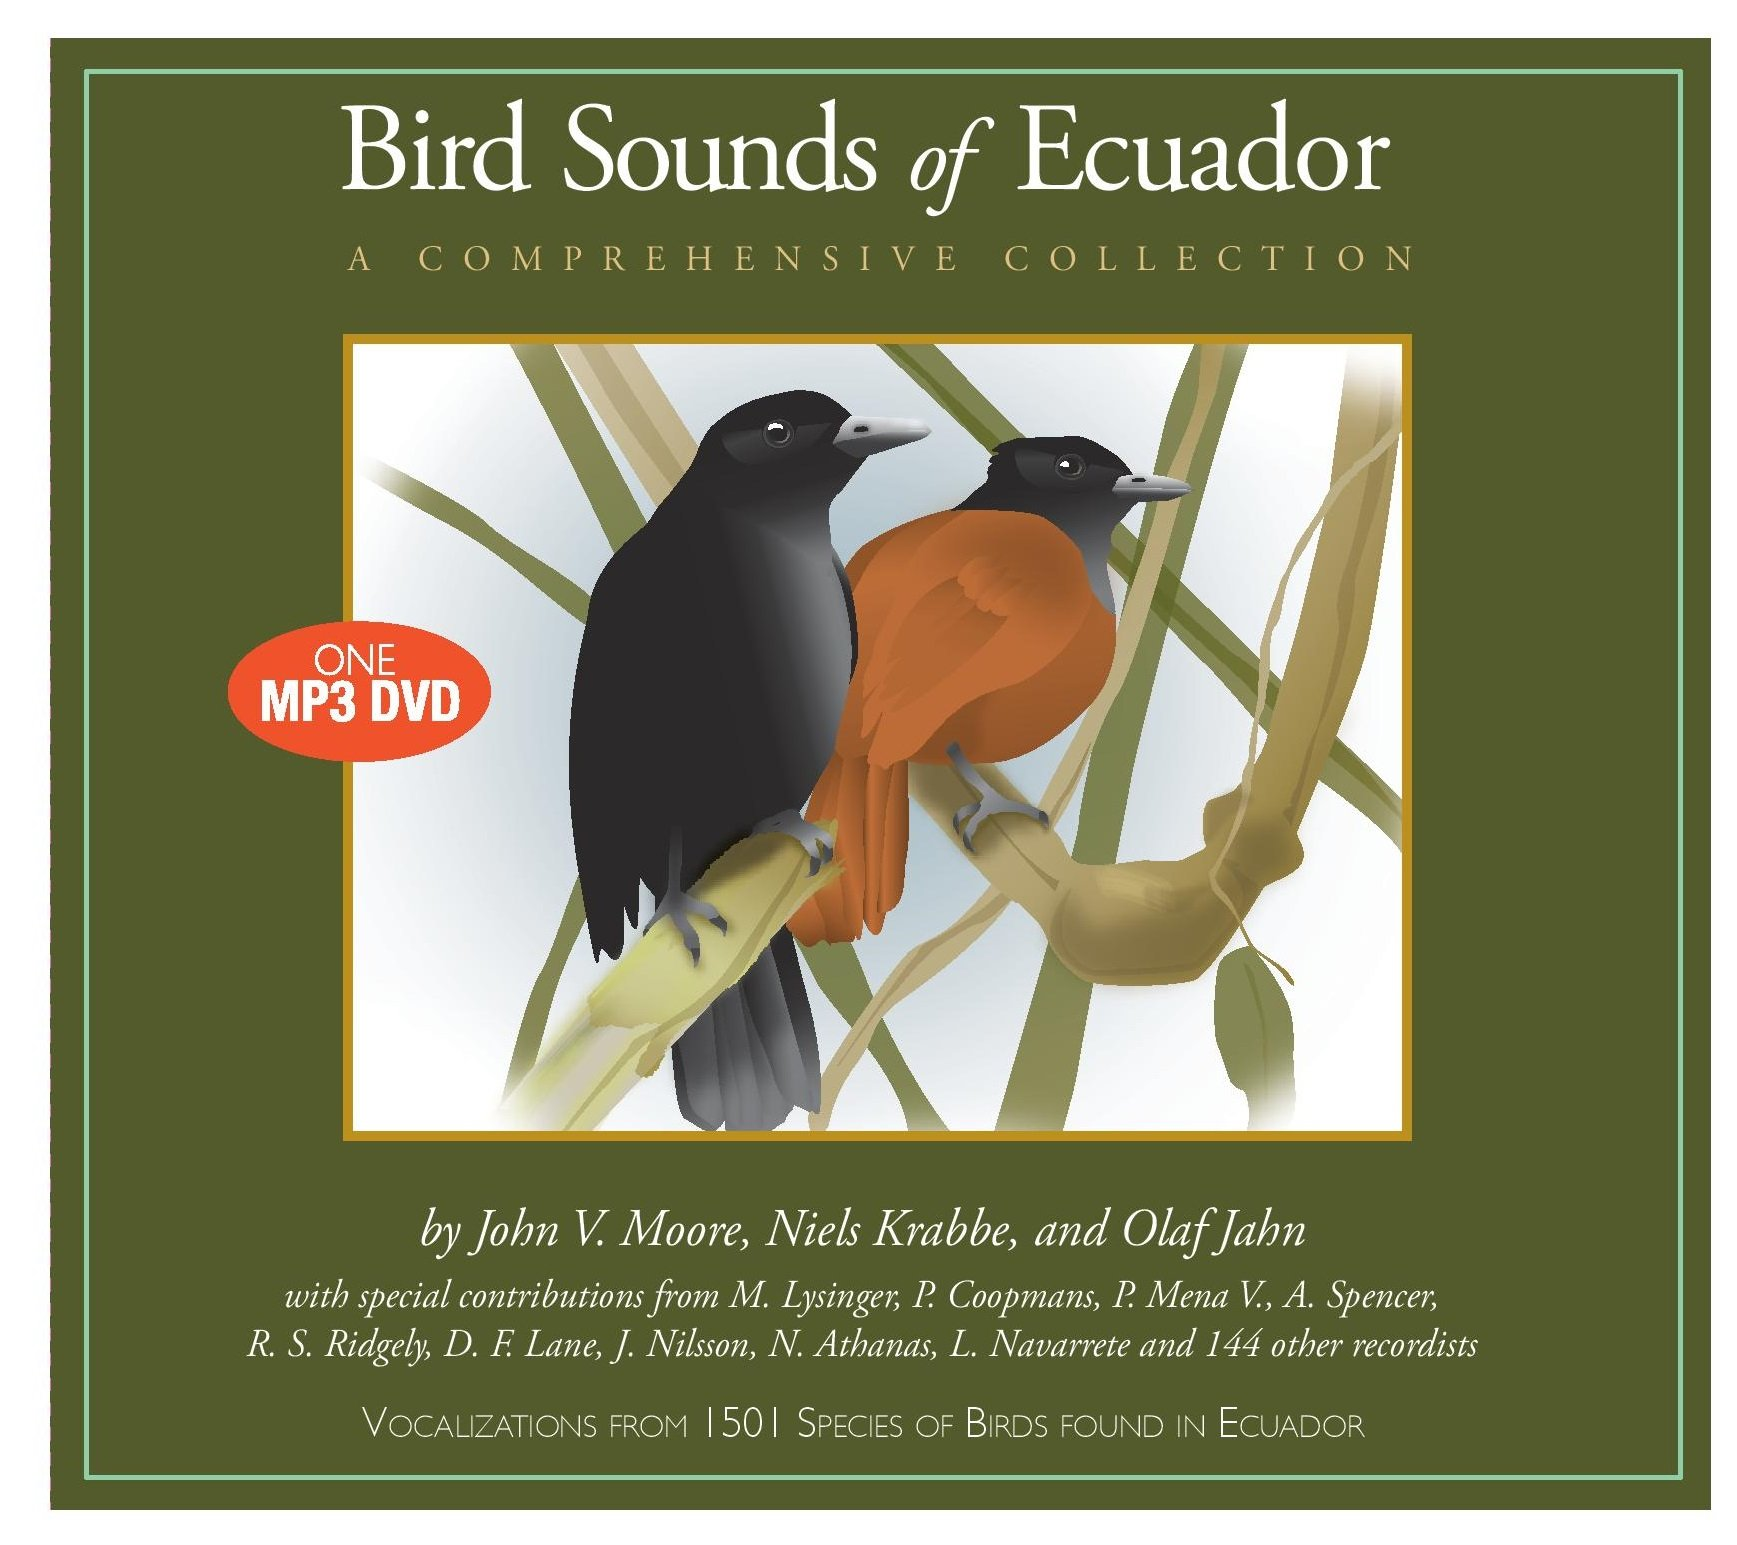 Bird Sounds of Ecuador